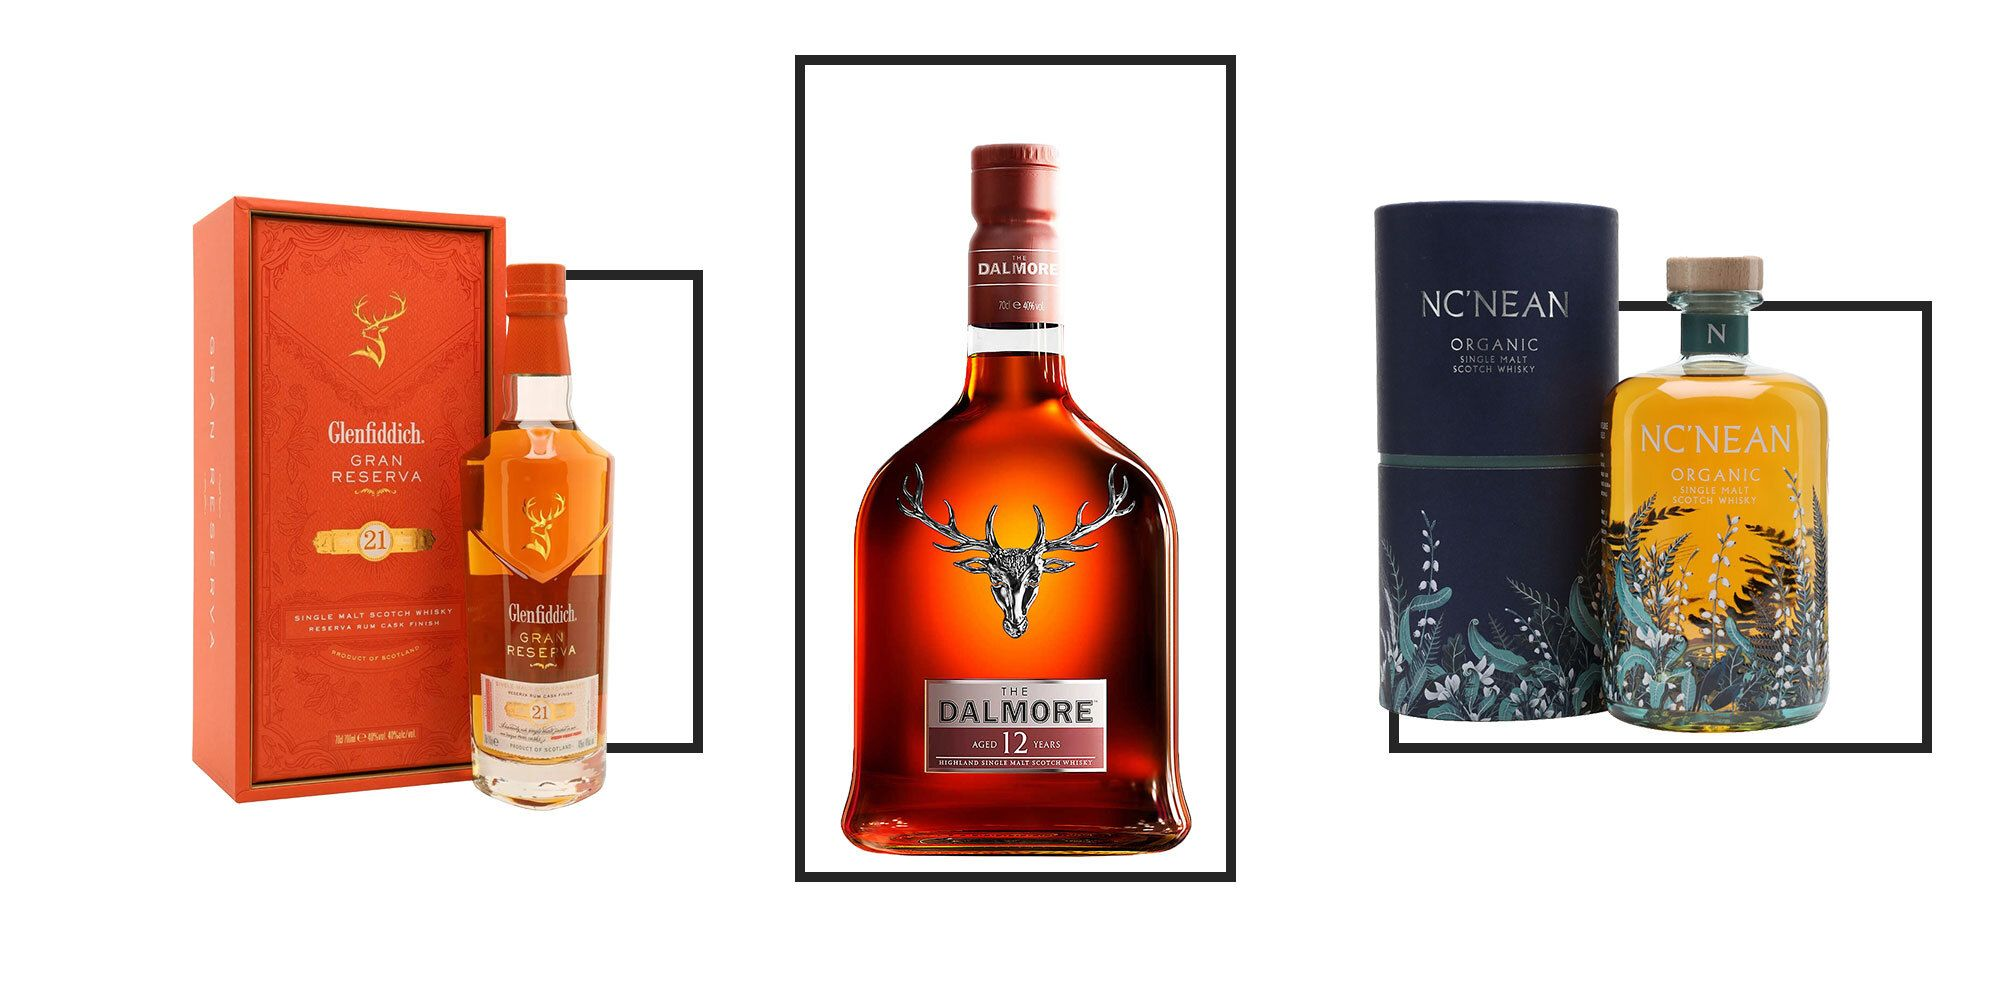 10 of the best luxury single malt whiskies to gift in 2021